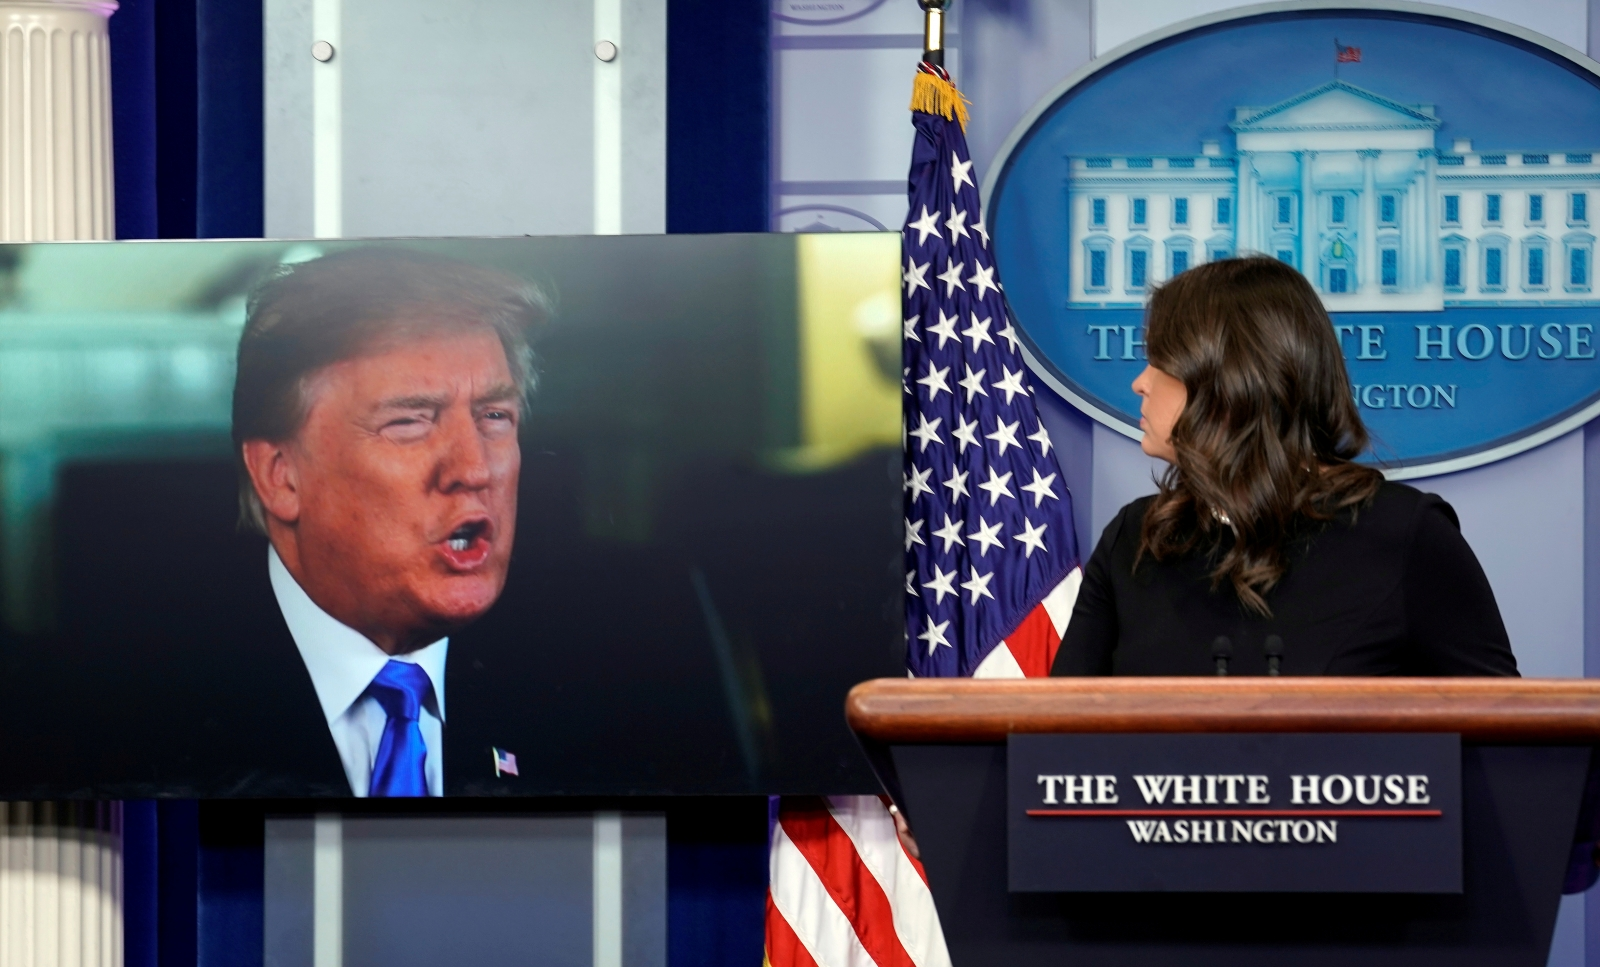 Trump Makes Video Look Earlier than Reporters